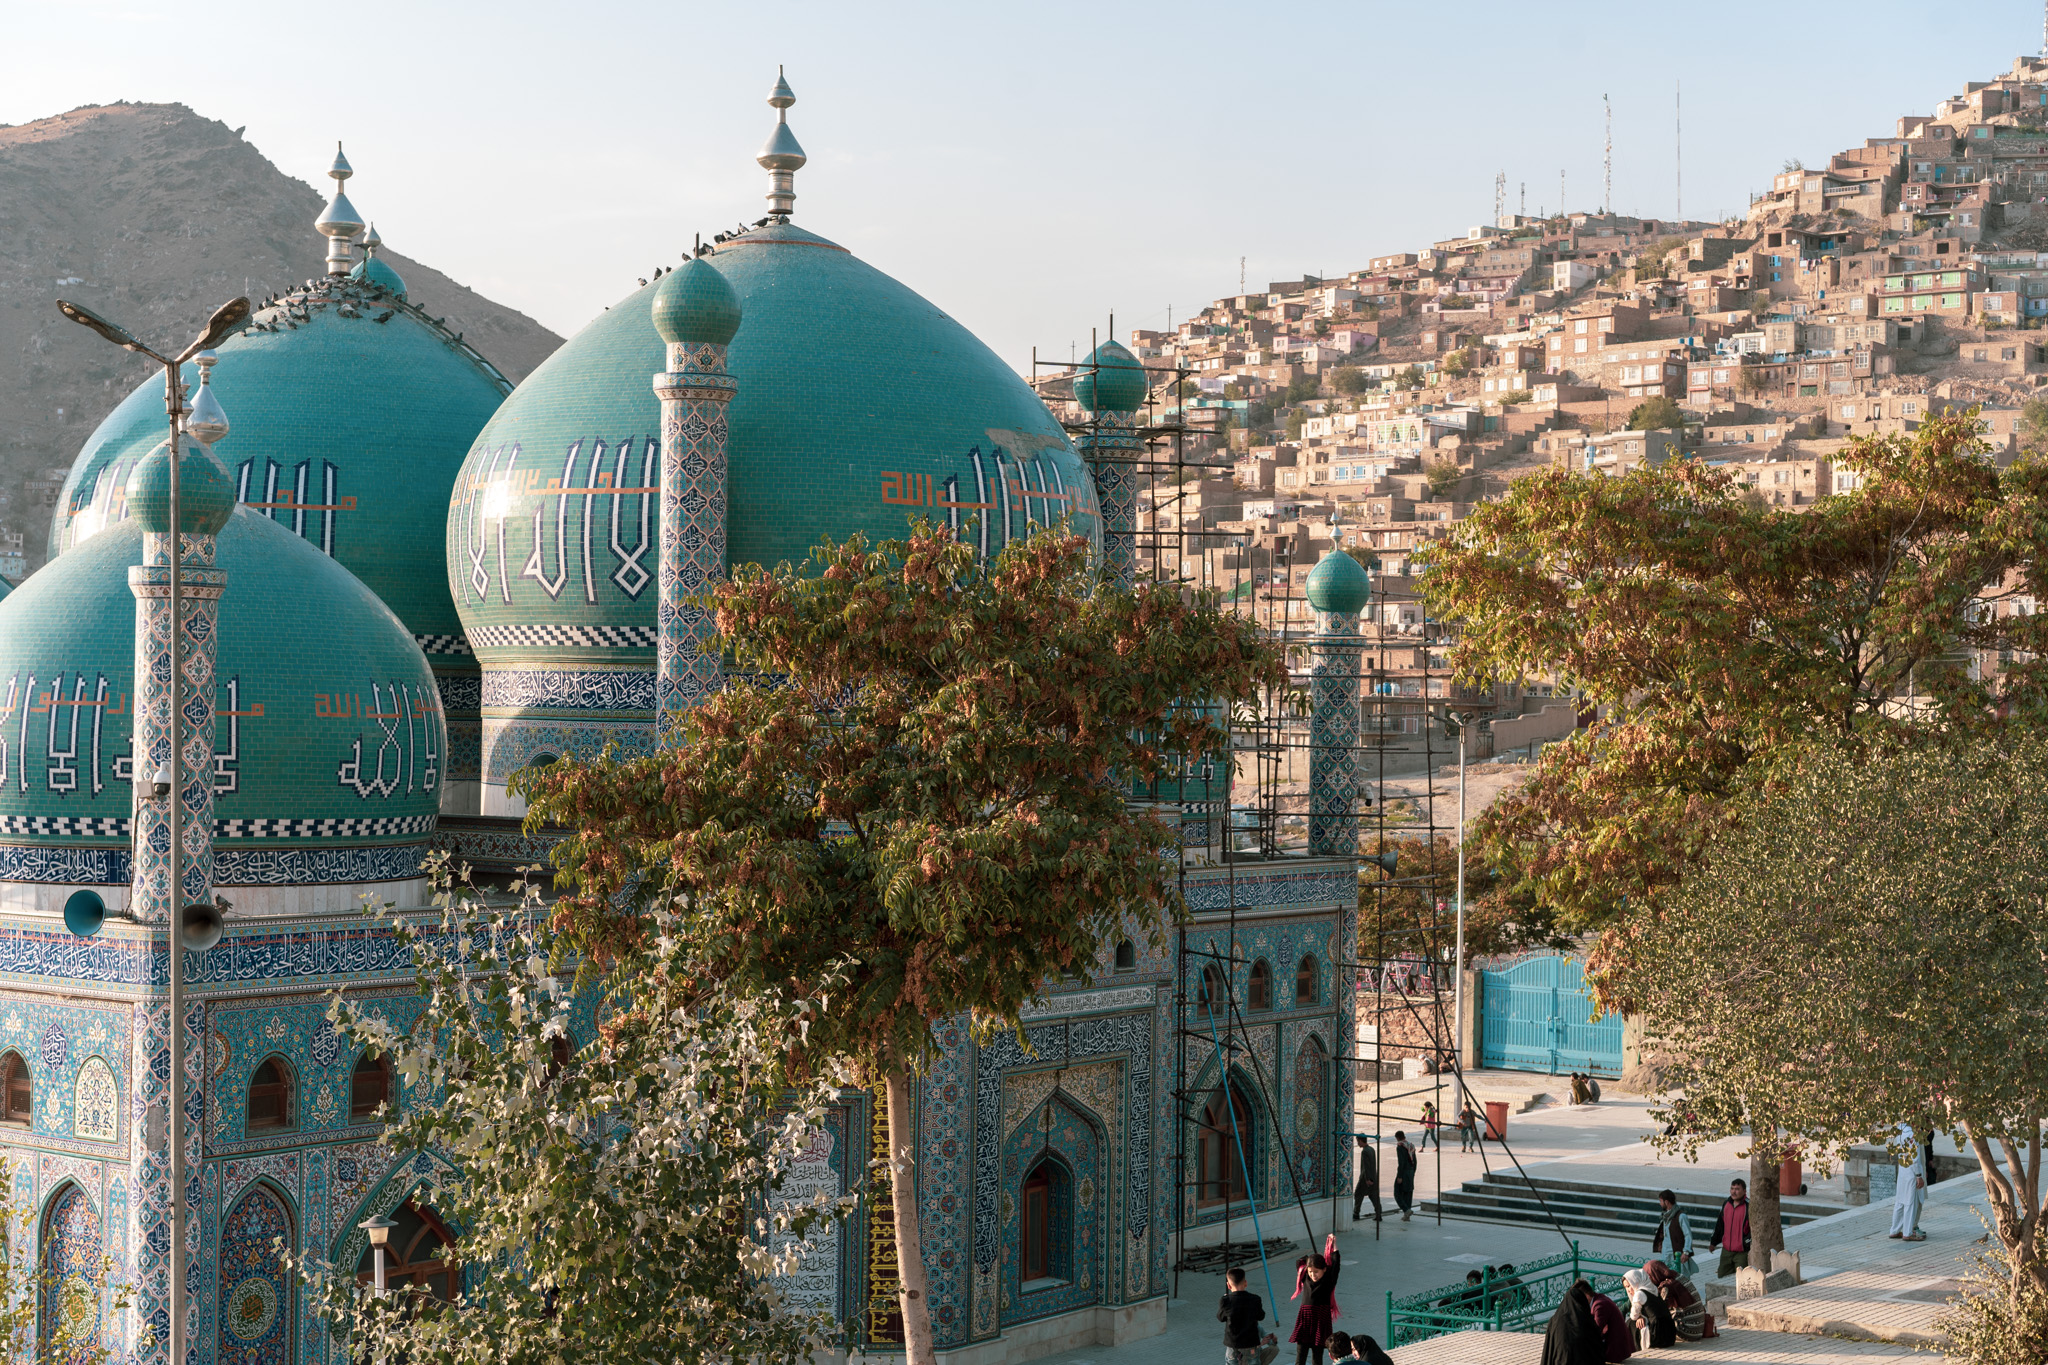 Kart-e-Sakhi, one of the beautiful mosques of Kabul